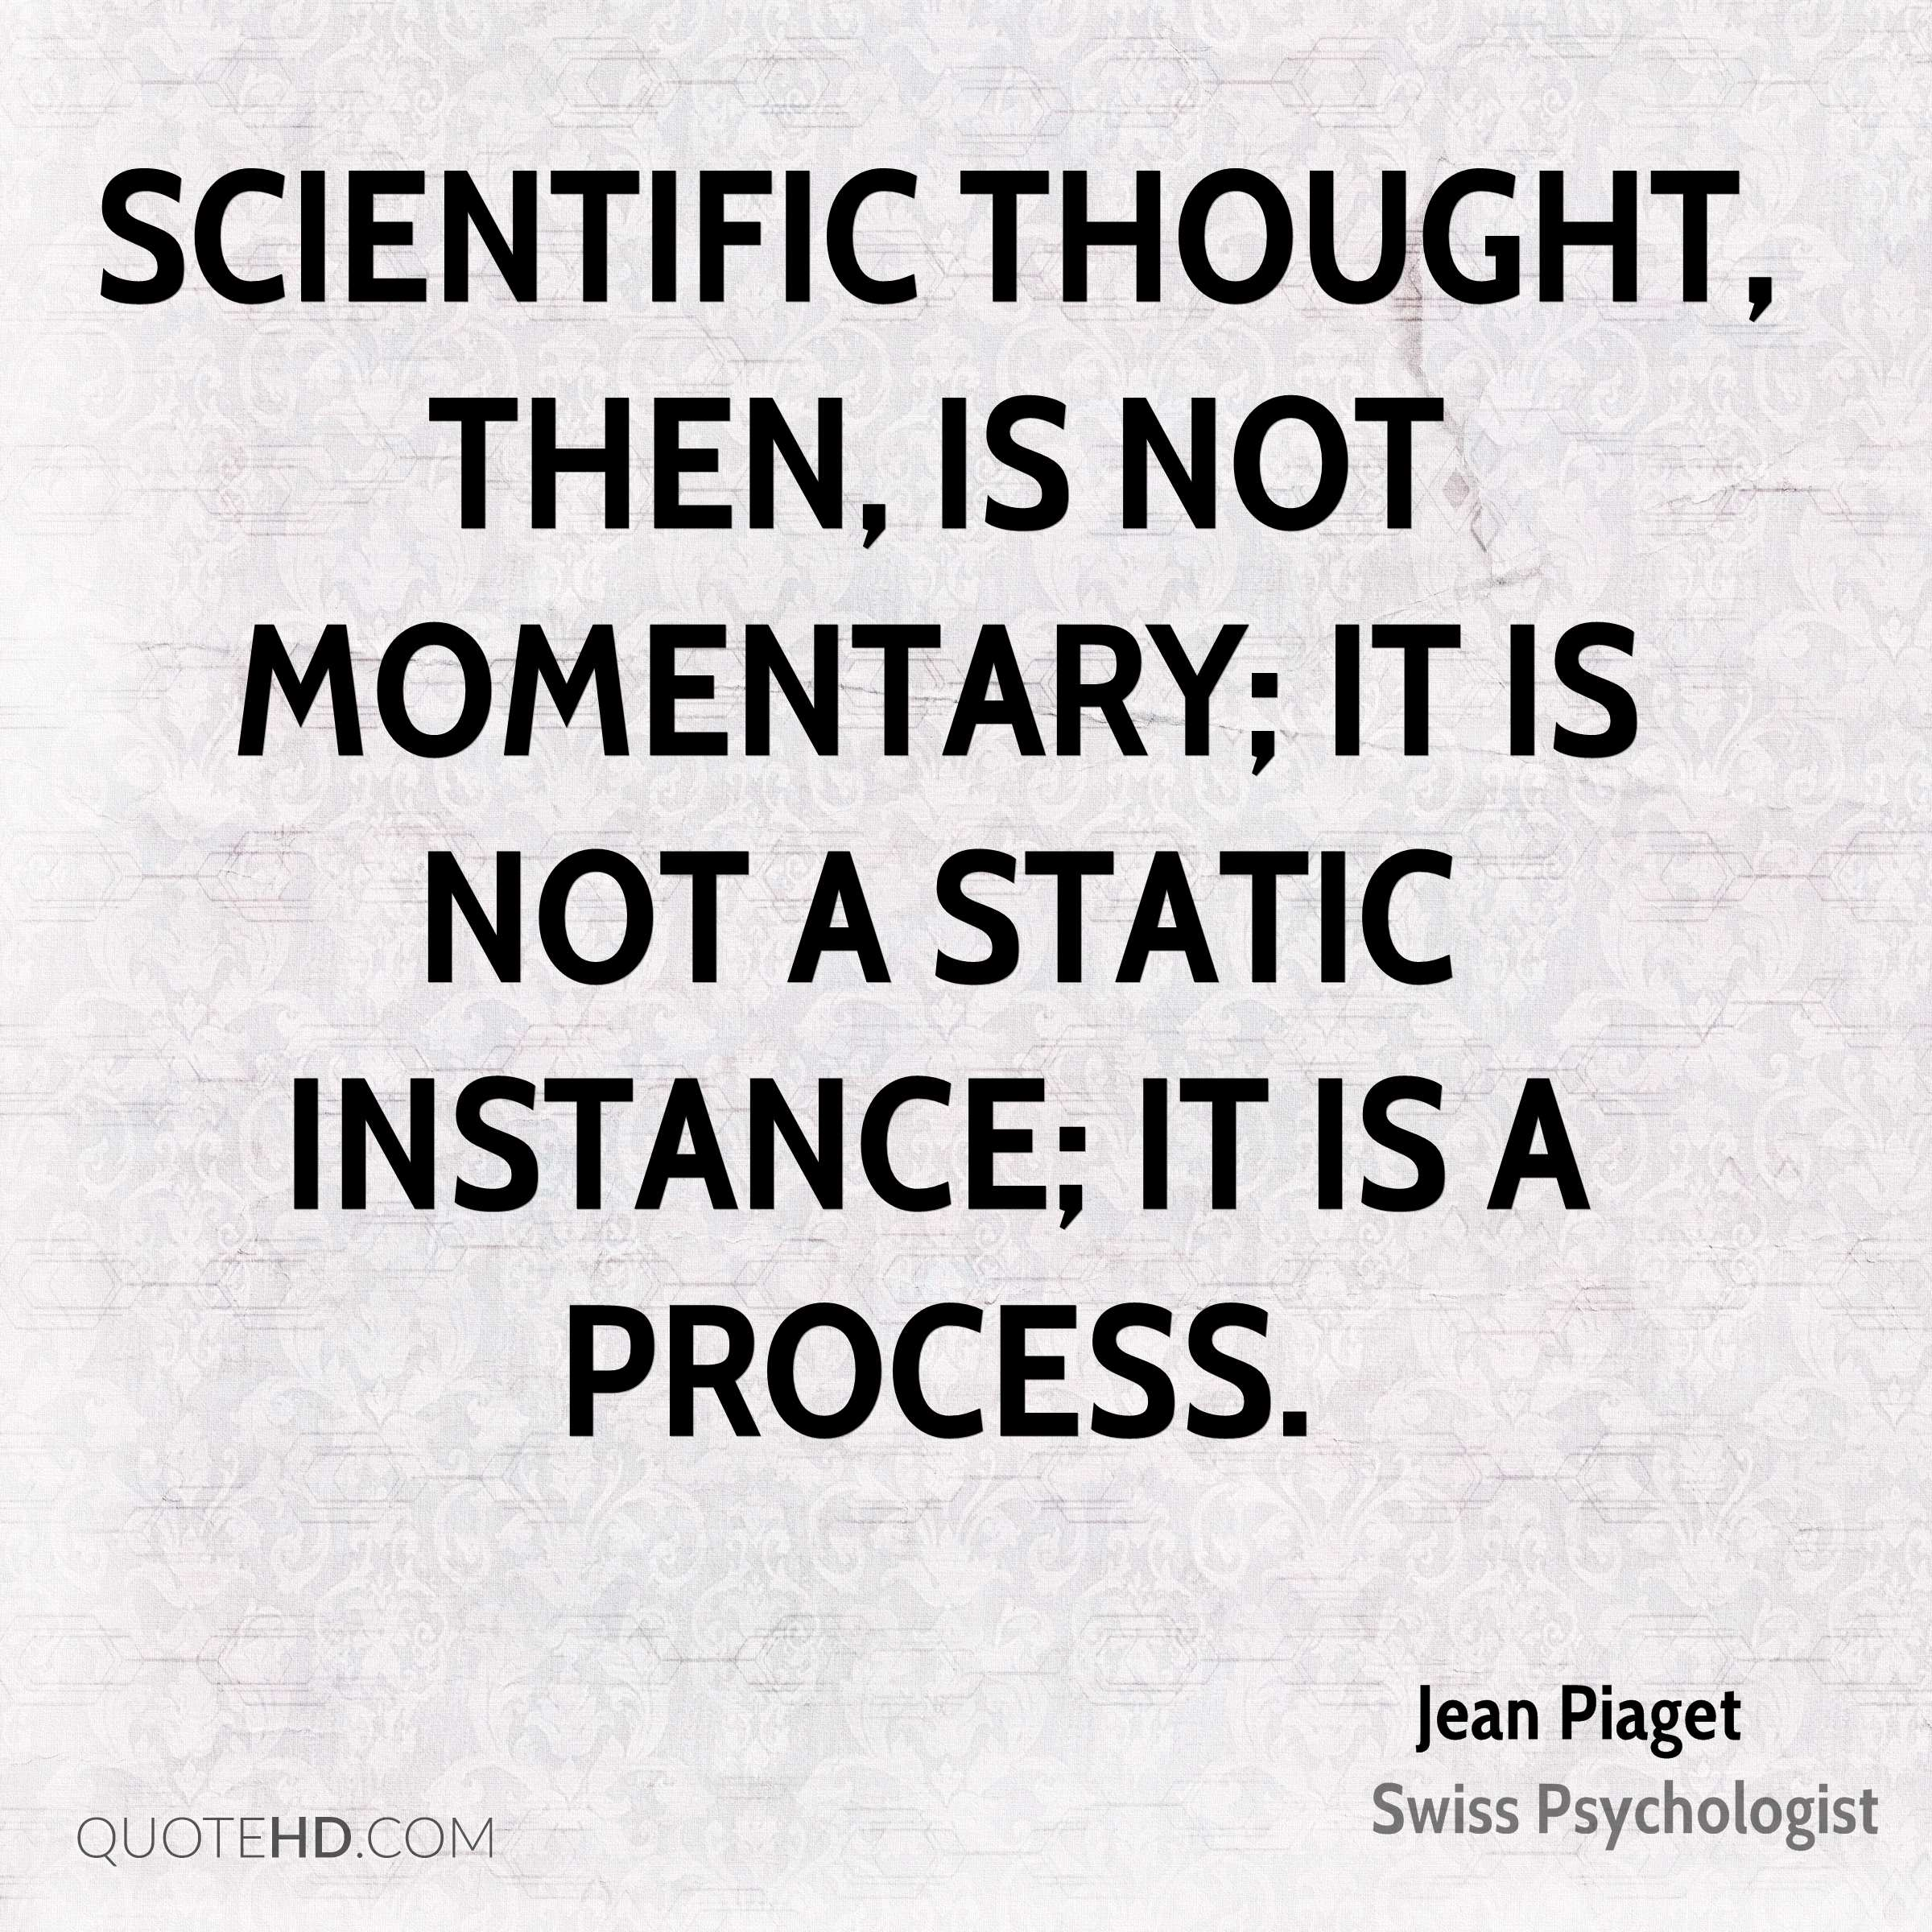 Scientific thought, then, is not momentary; it is not a static instance; it is a process.